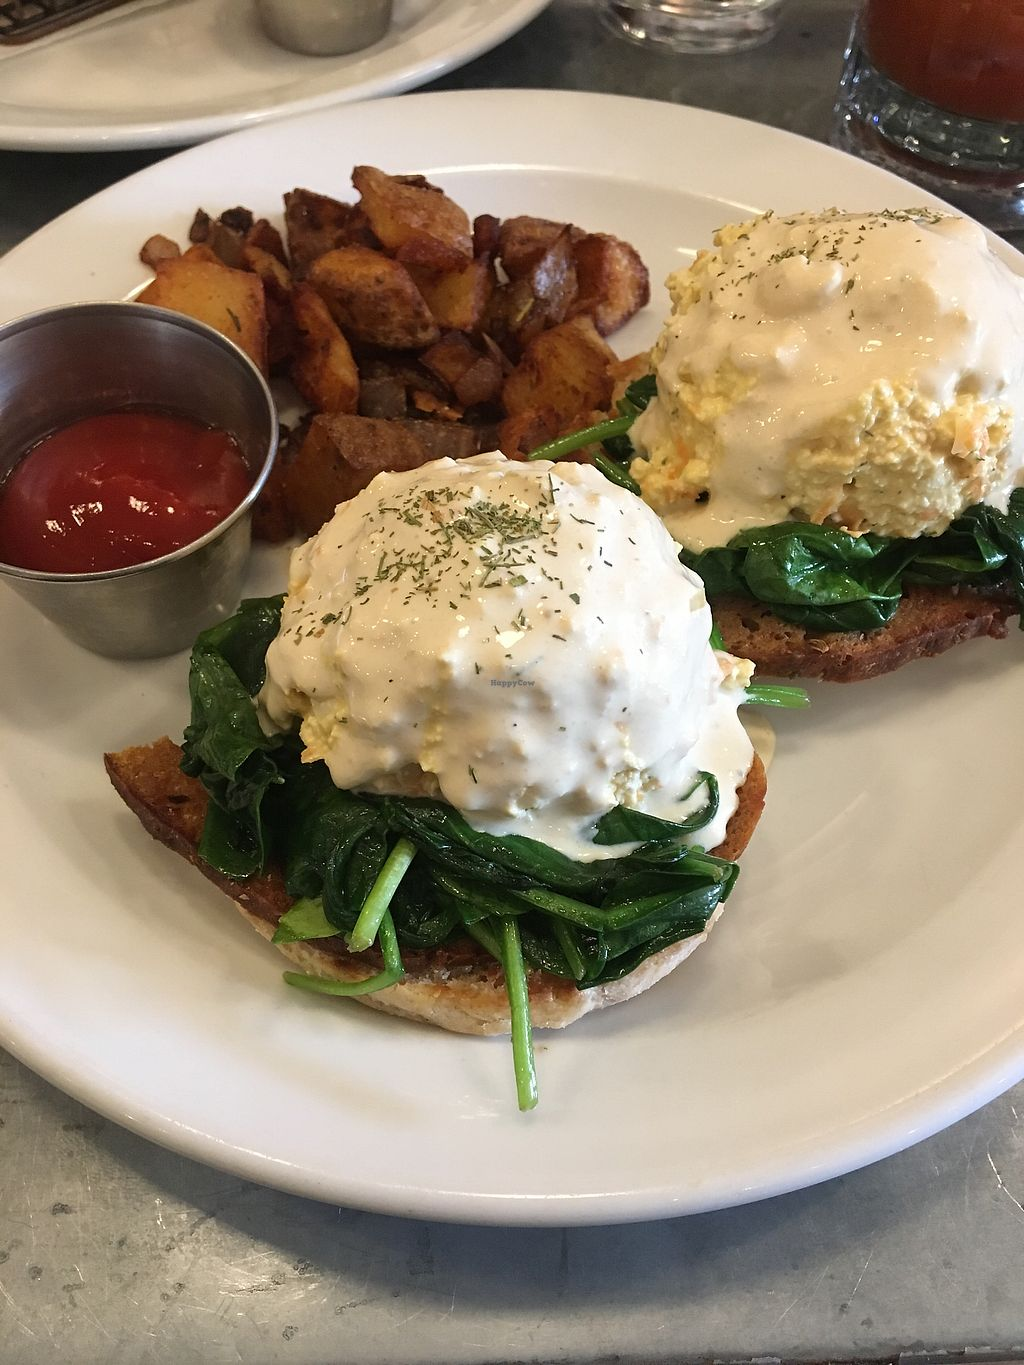 """Photo of Fare Well  by <a href=""""/members/profile/elisehartill"""">elisehartill</a> <br/>Tofu egg florentine with Seitan sausage!  <br/> January 2, 2018  - <a href='/contact/abuse/image/75173/342011'>Report</a>"""